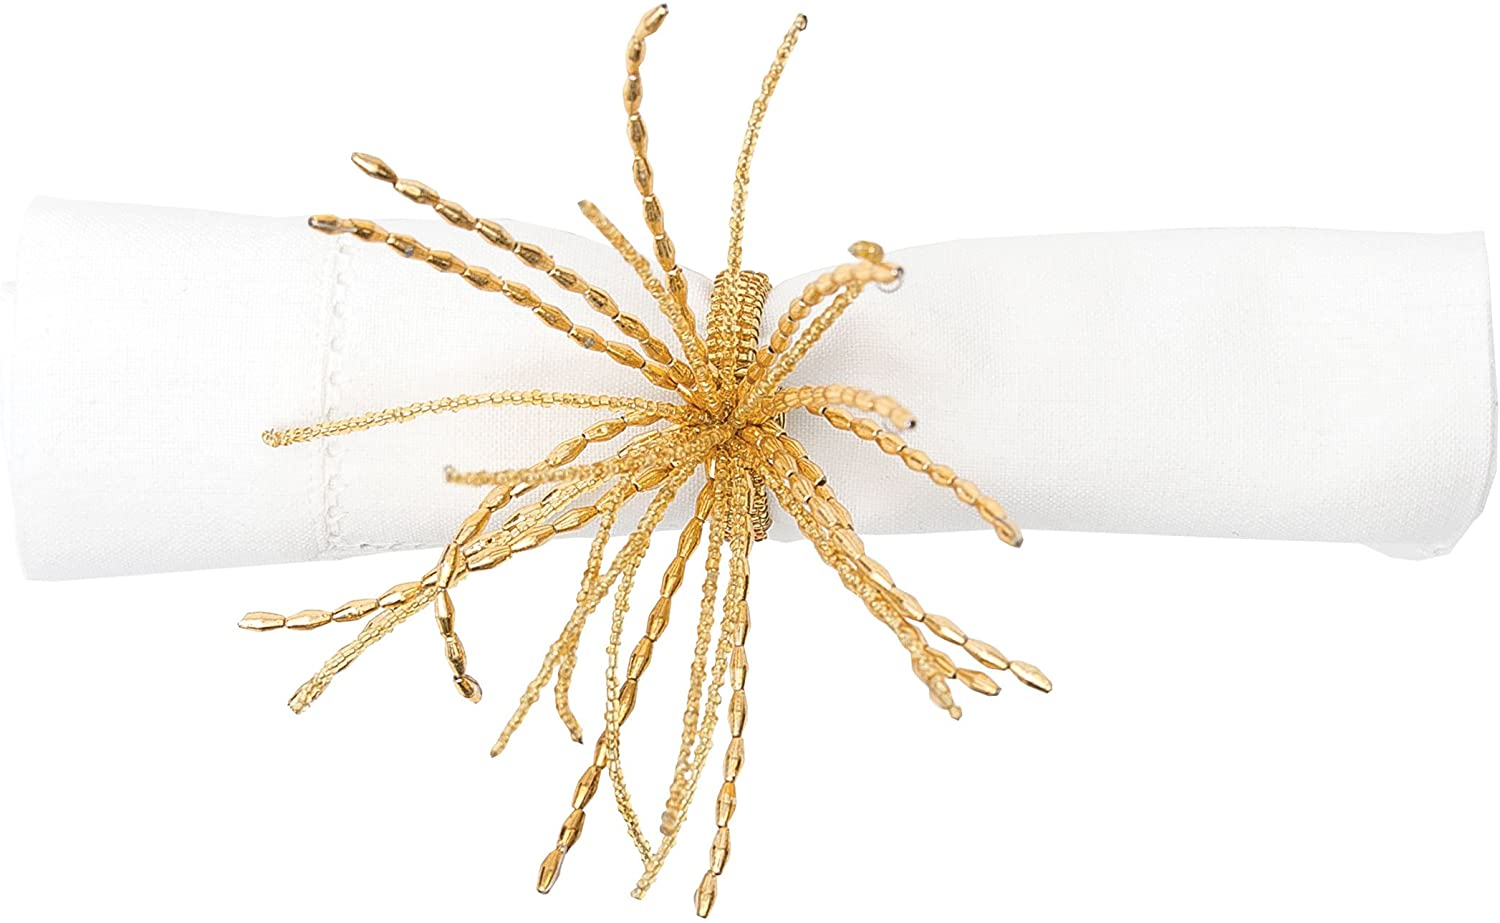 C&F Home Beaded Spray Gold Tropical Beach House Coastal Ocean Hand Crafted Decorative Parties Occasion Napkin Ring Set of 6 Napkin Ring Set of 6 Gold